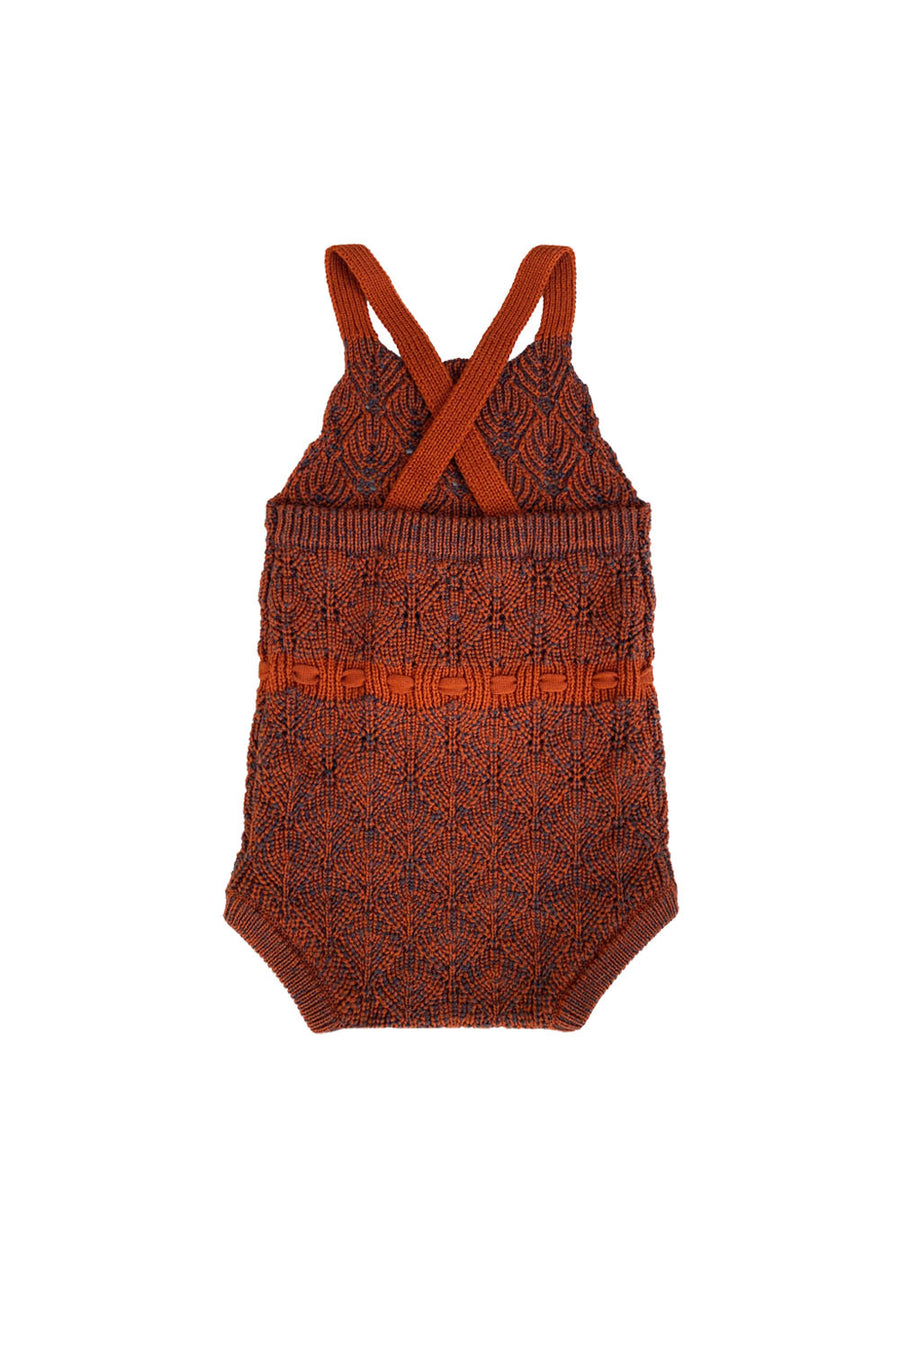 Brick/Cocoa Knitted Romper by Mabli